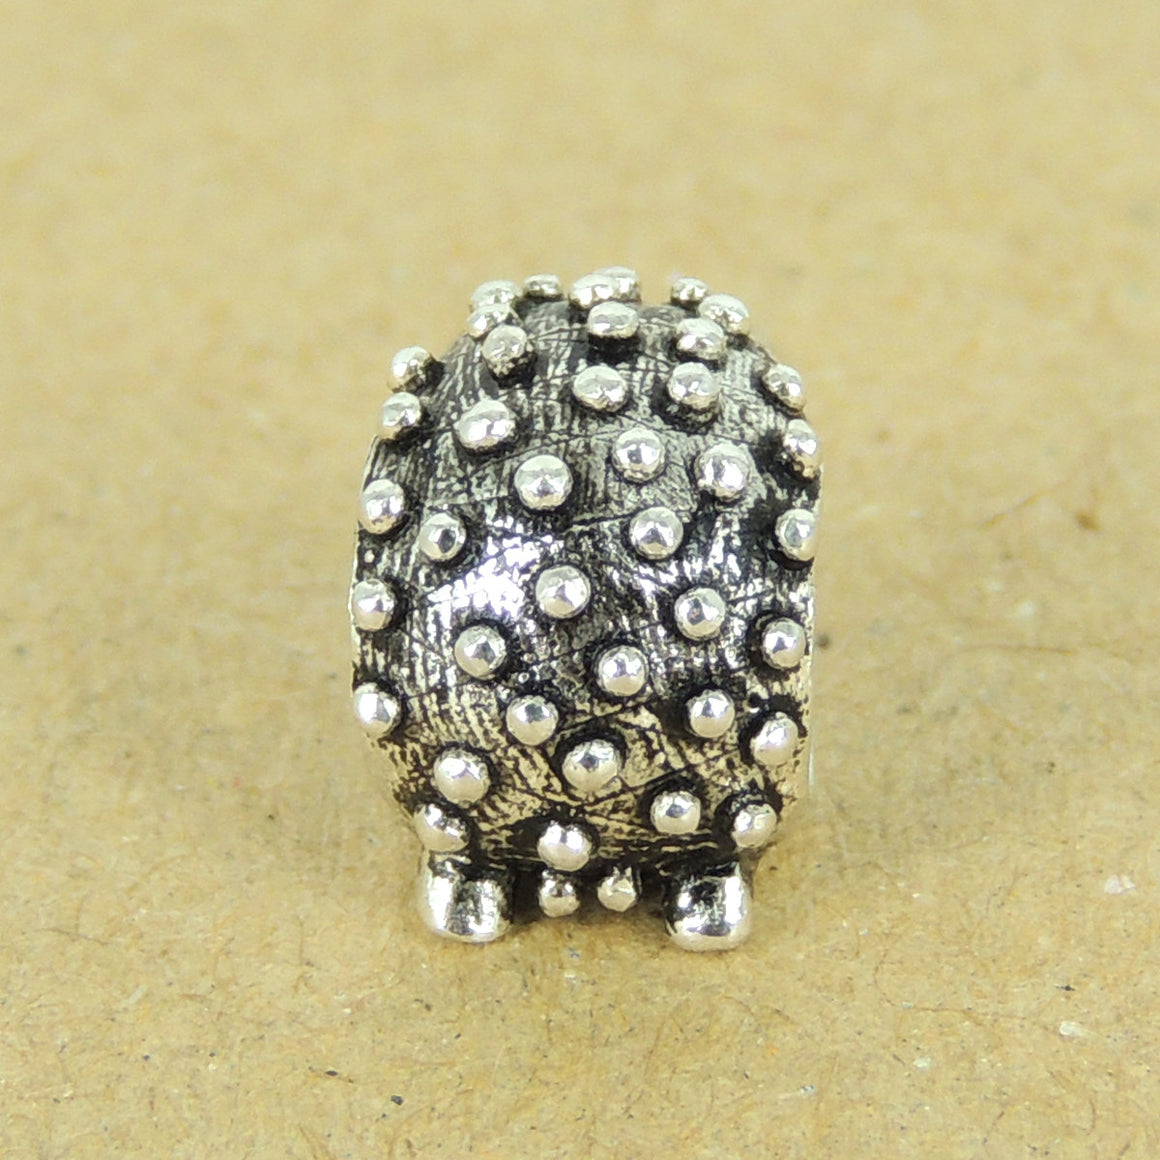 1 PC Cute Hedgehog Charm - S925 Sterling Silver WSP319X1